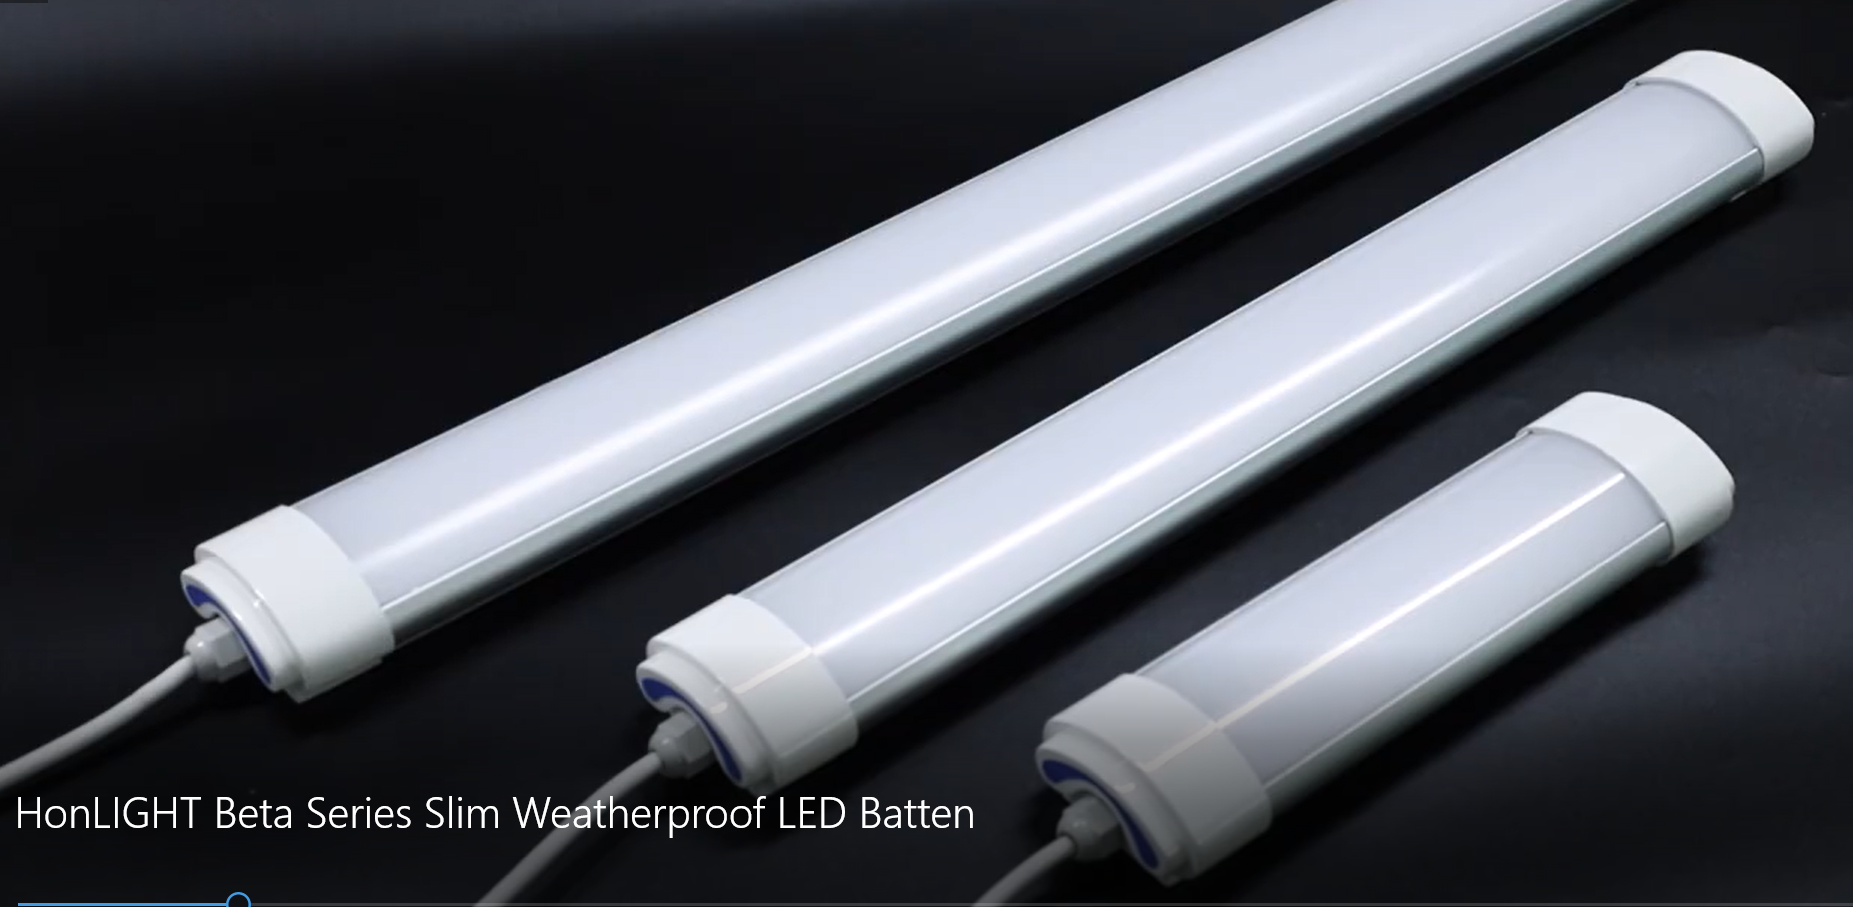 HonLIGHT Beta Series Slim Weatherproof LED Batten